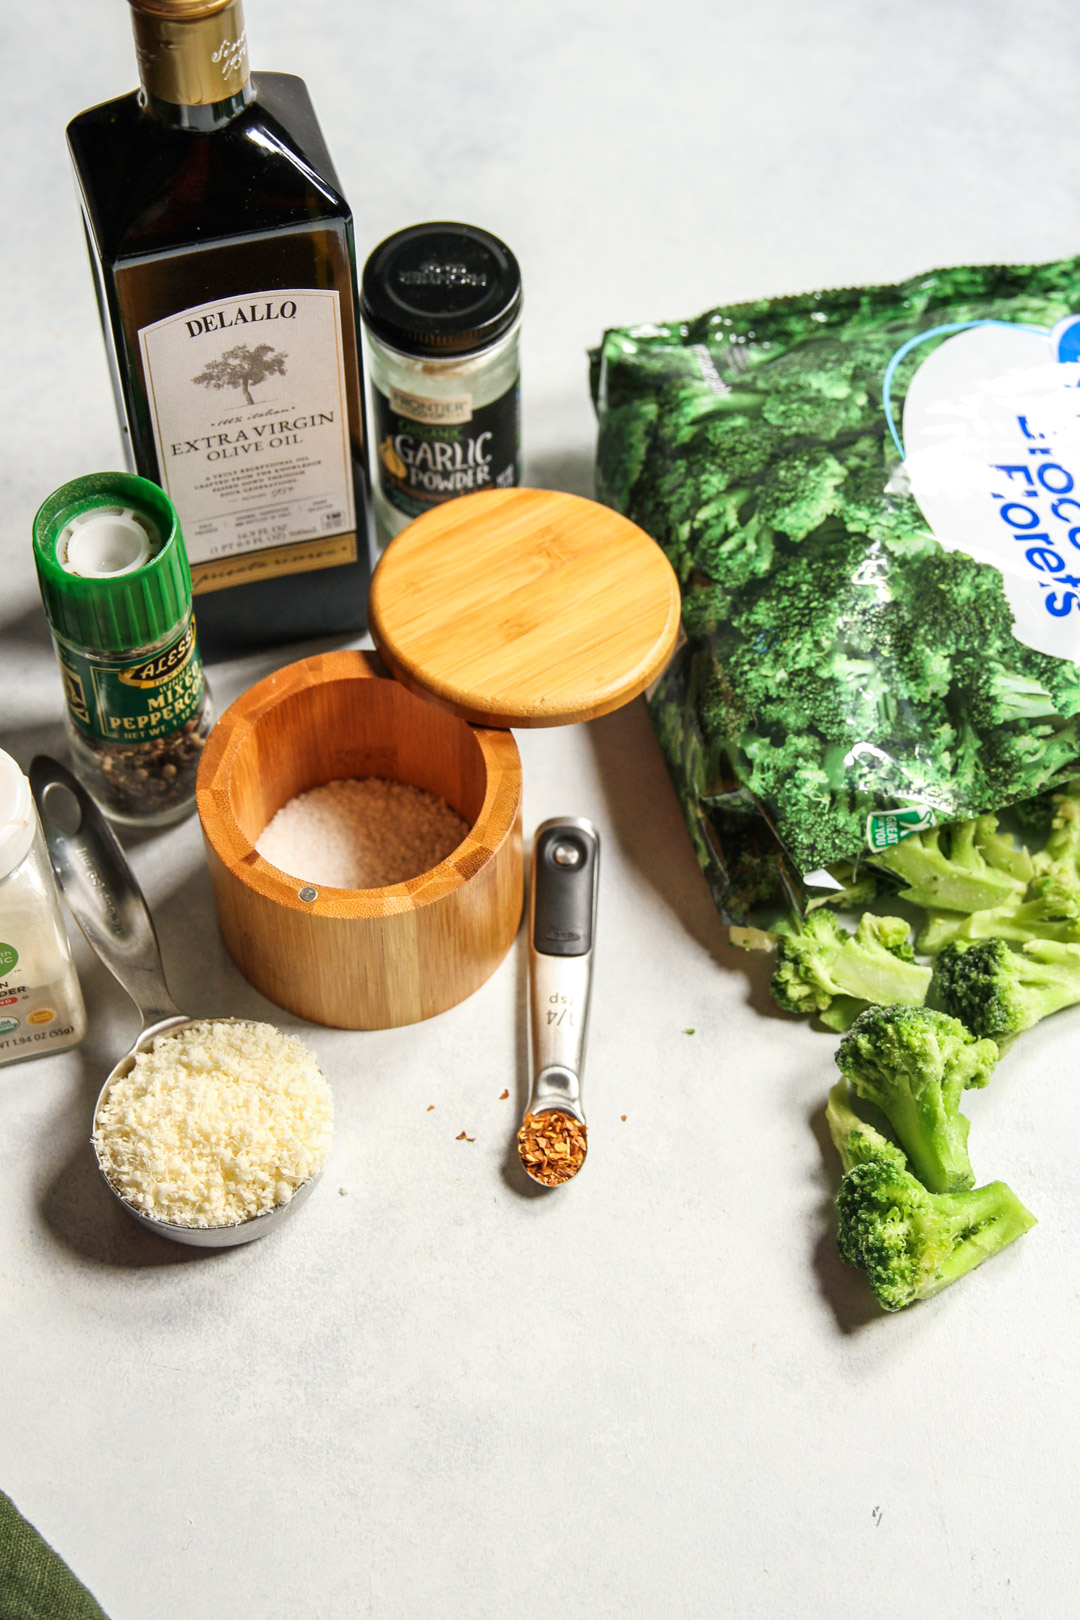 All of the ingredients you need for crispy from frozen roasted broccoli